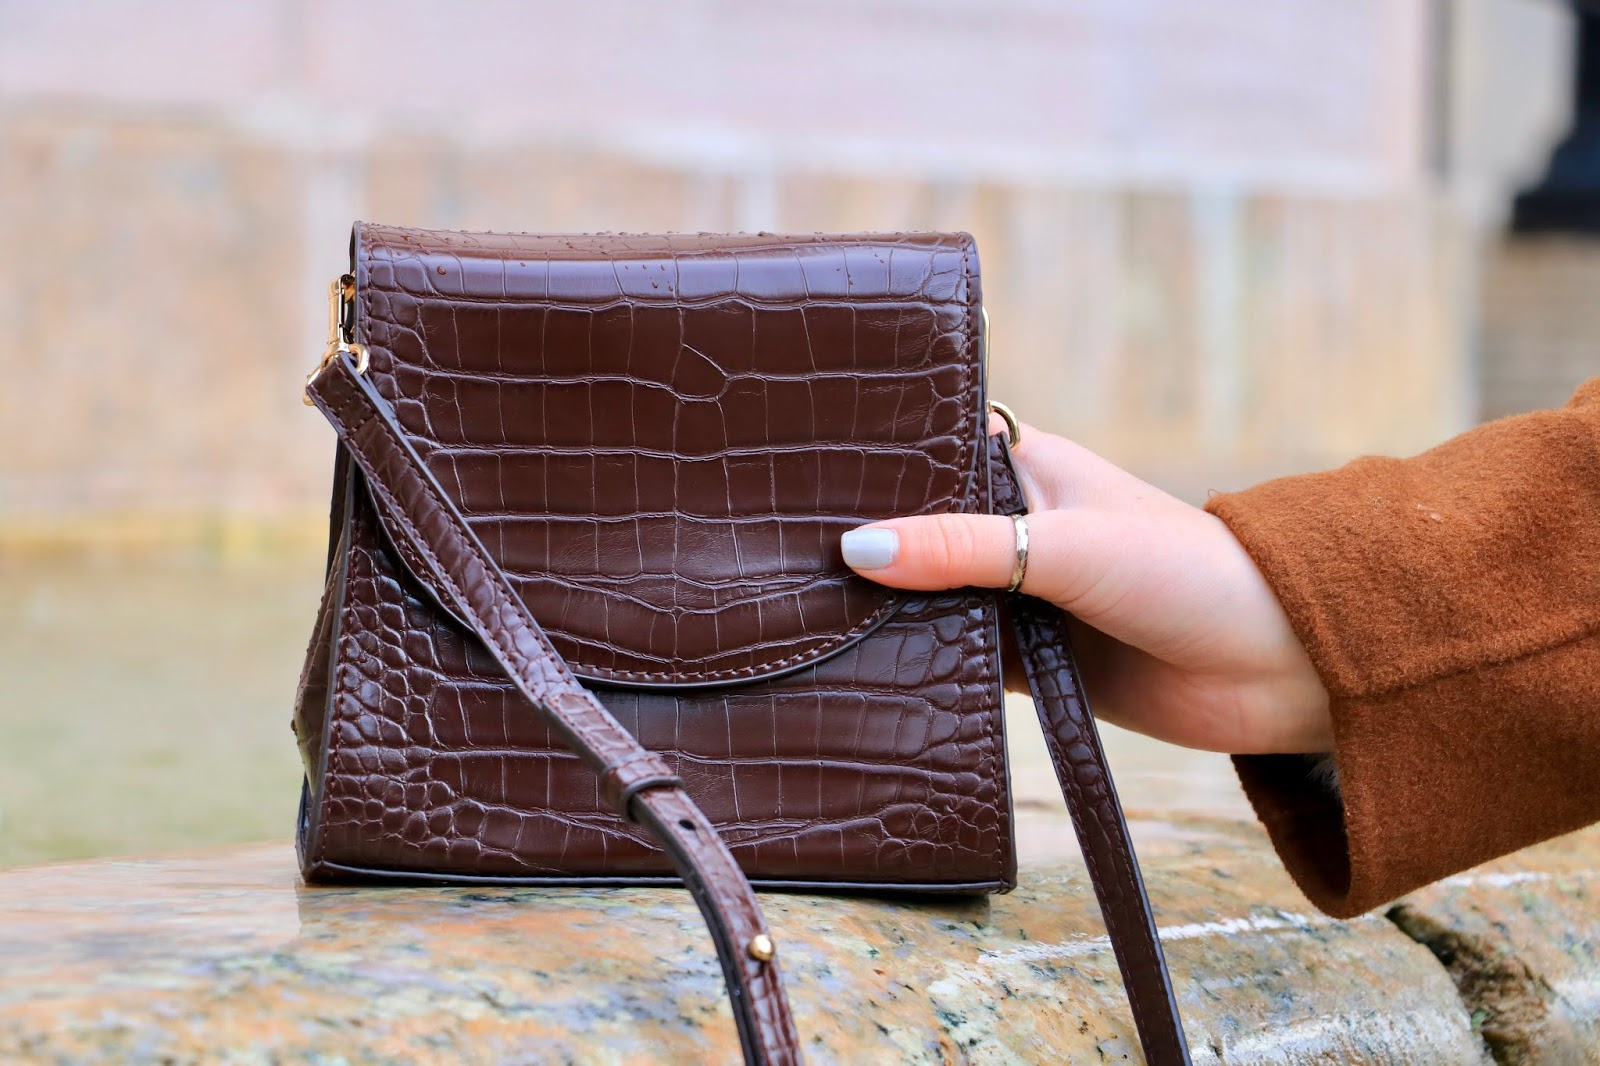 Nyc fashion influencer Kathleen Harper wearing a brown croc-effect purse from MANGO.